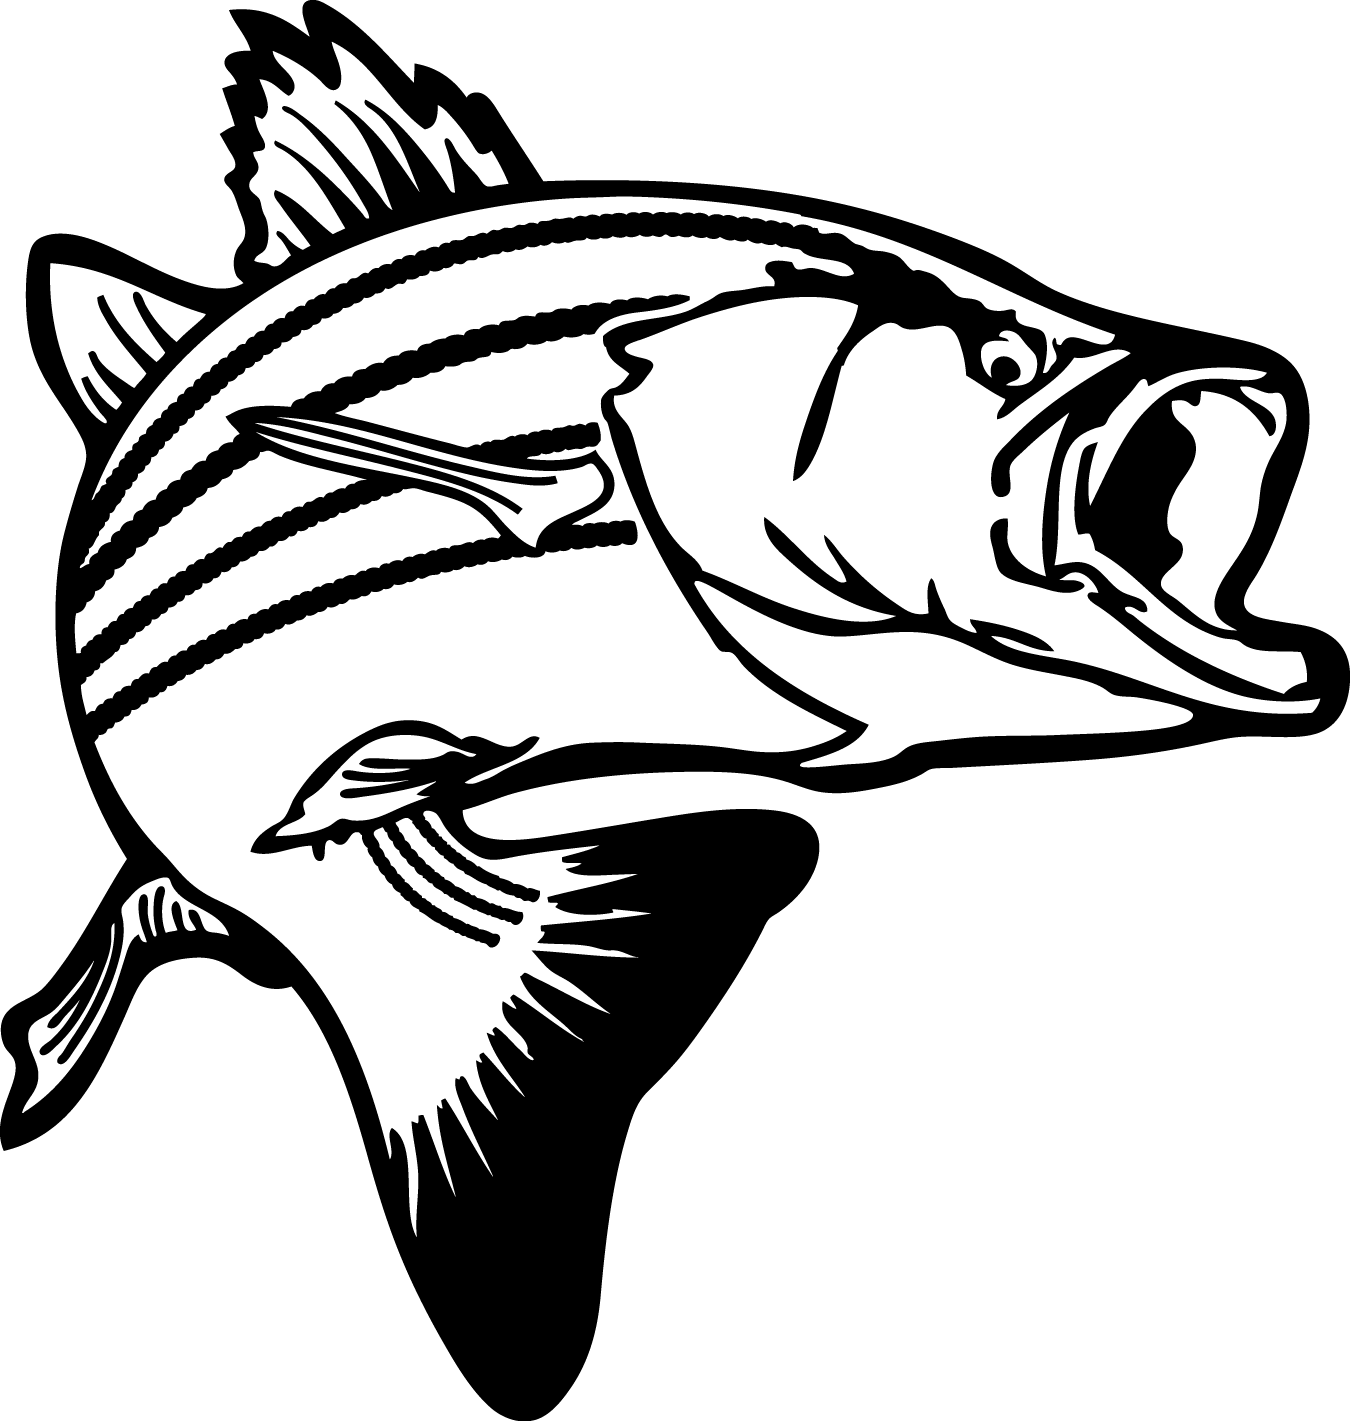 Bass Fishing Clipart Black And White   Clipart Panda   Free Clipart